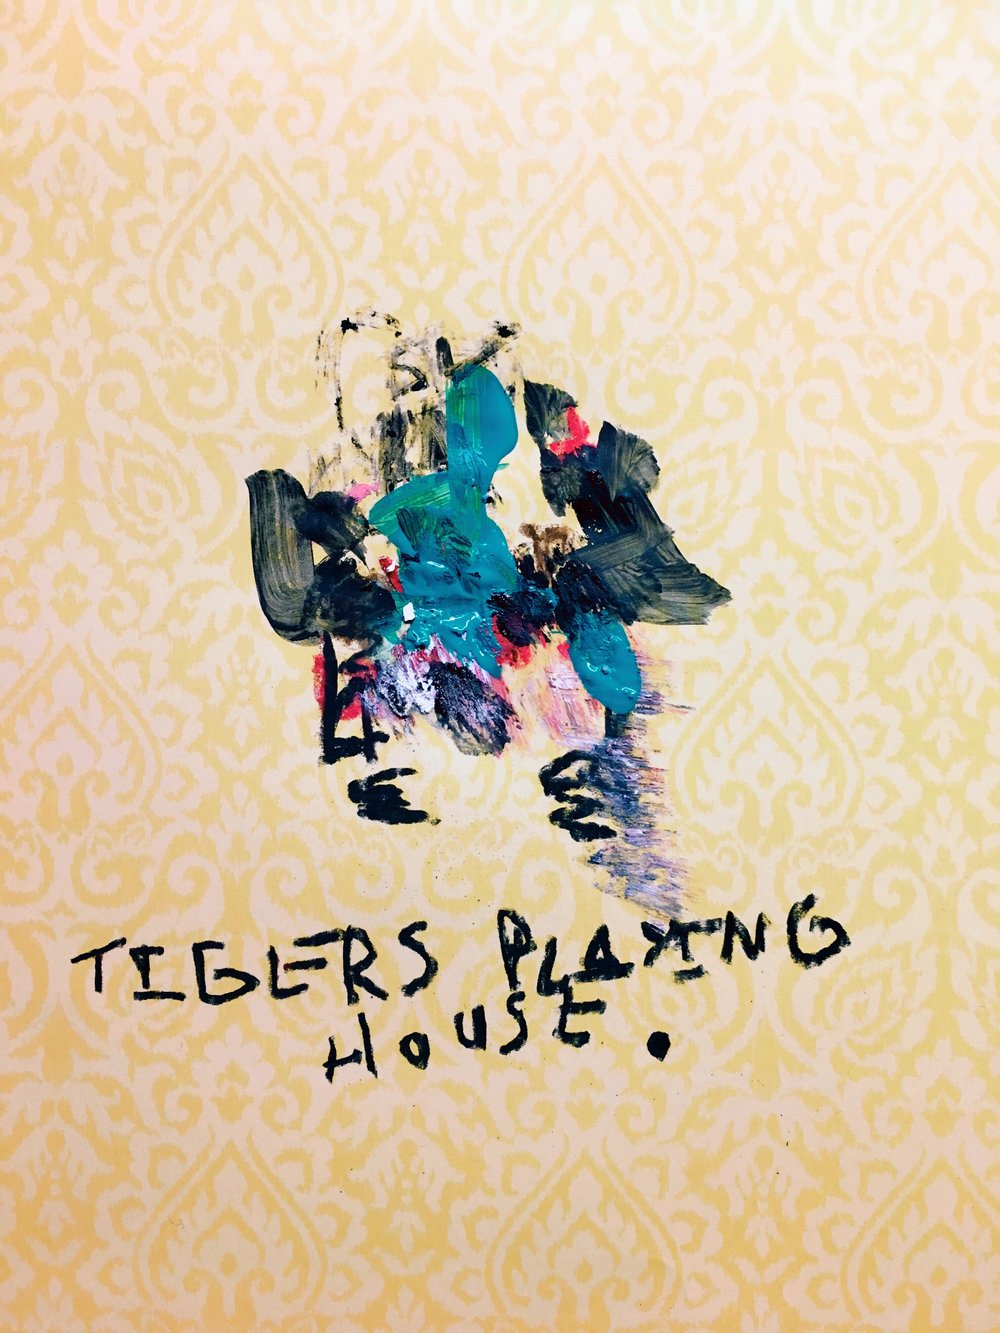 tigers playing house, 2018